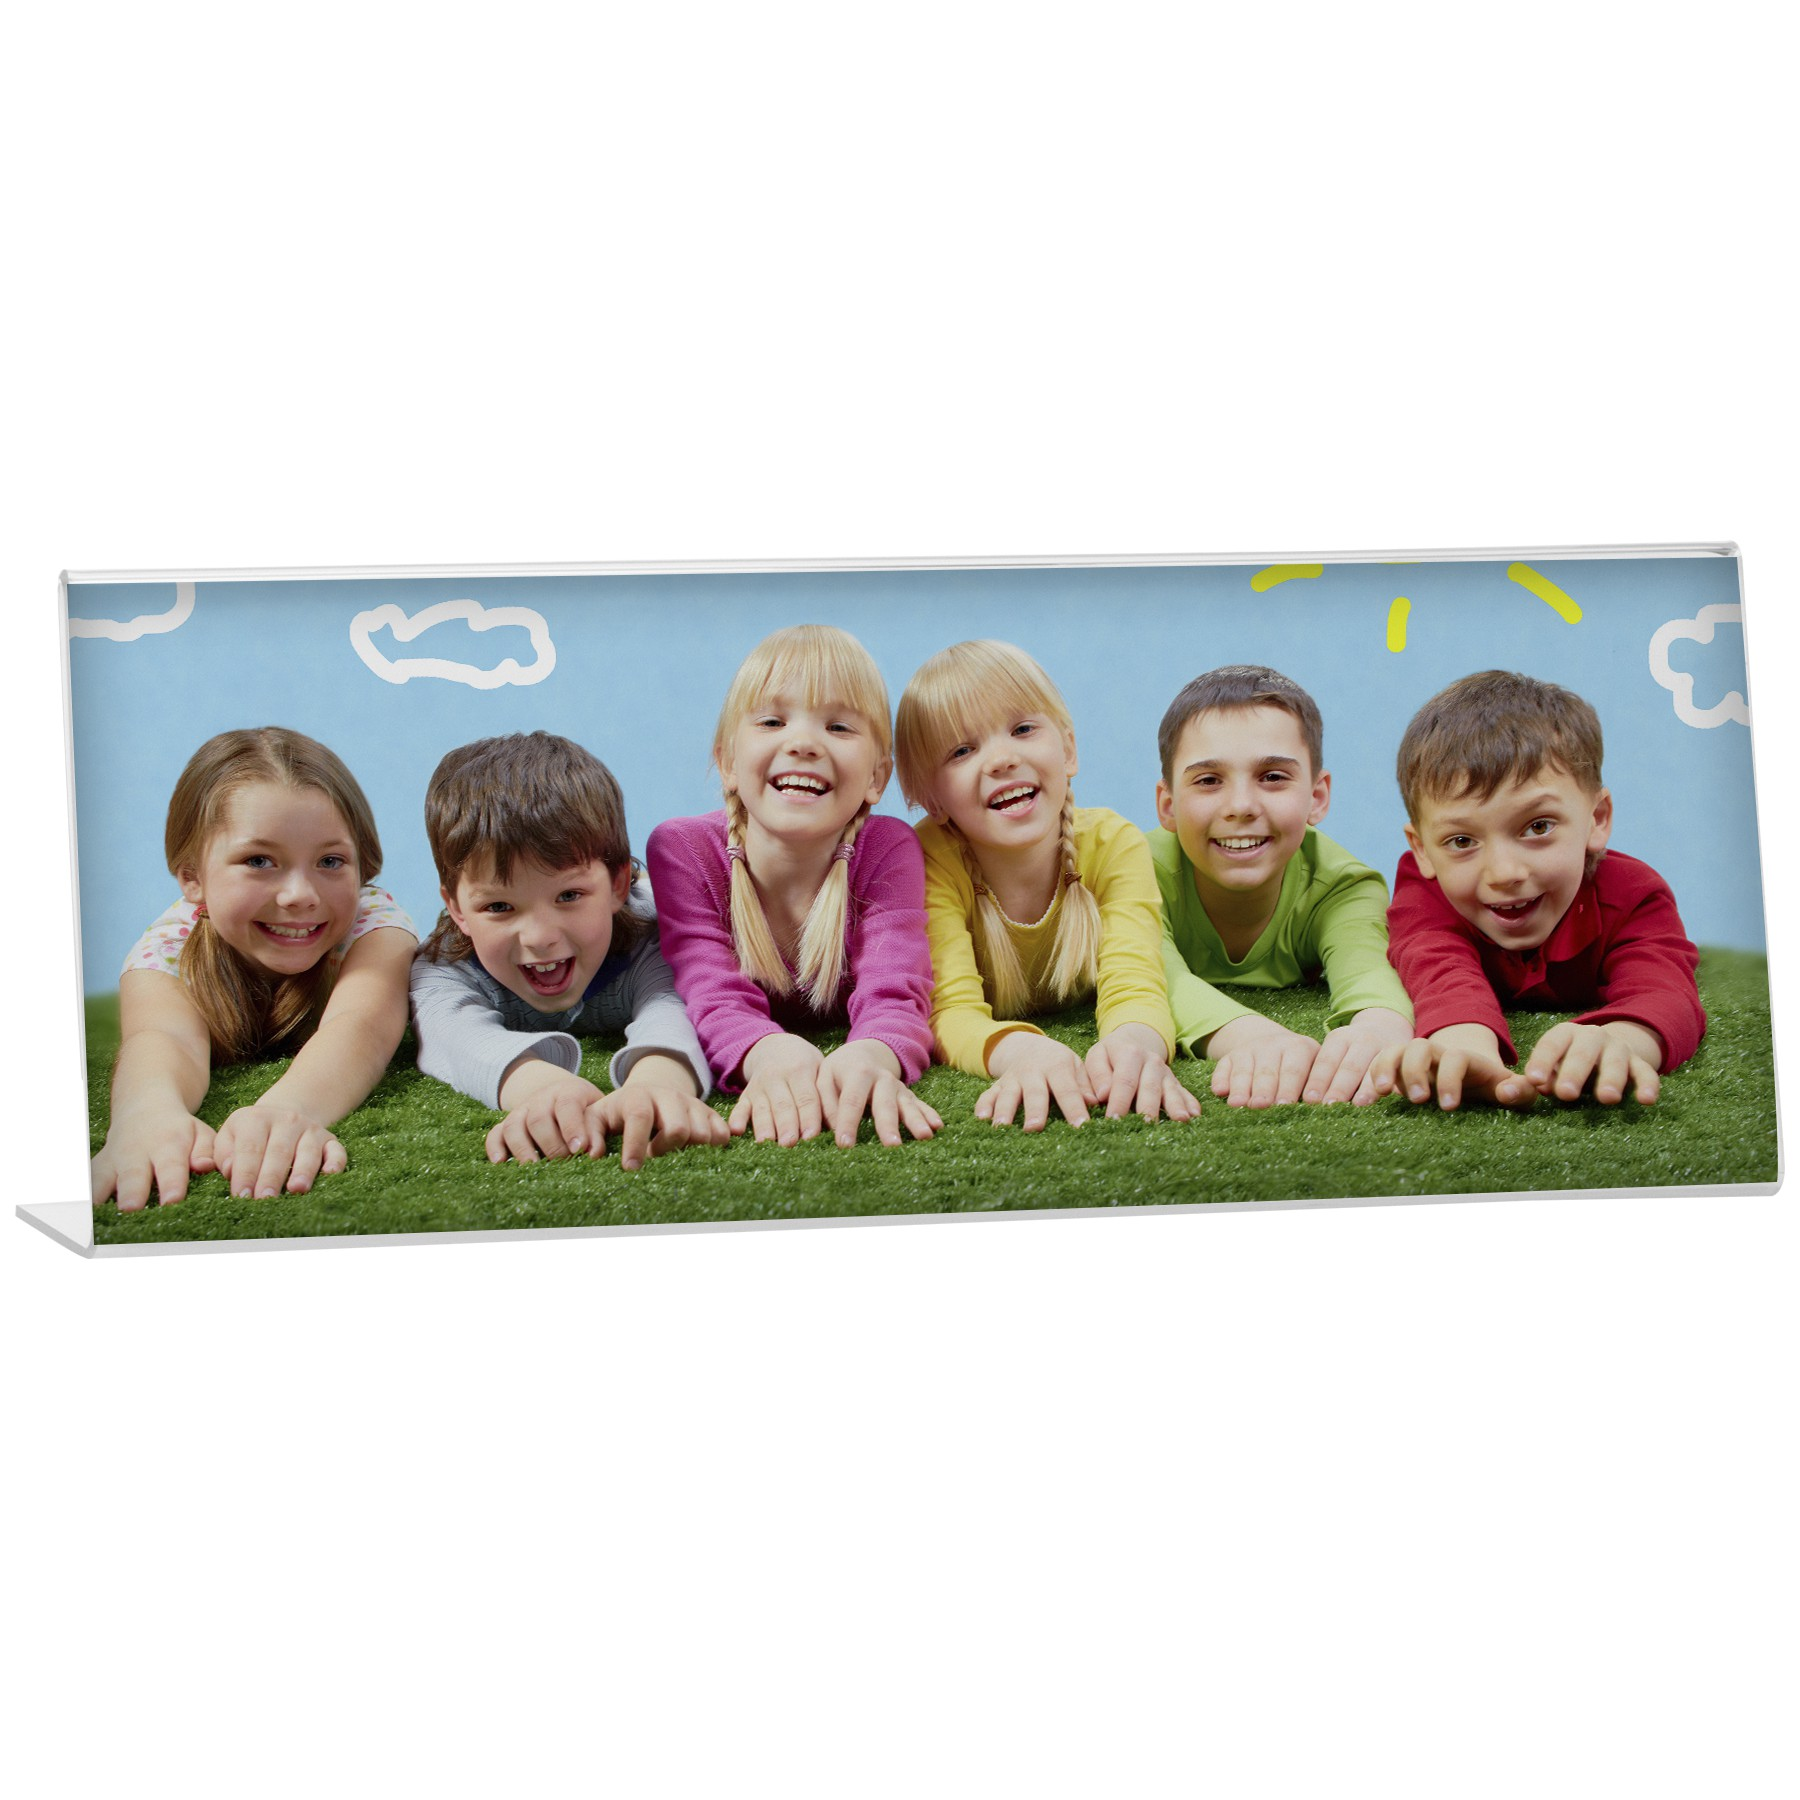 Bent Easel Panoramic Picture Frame